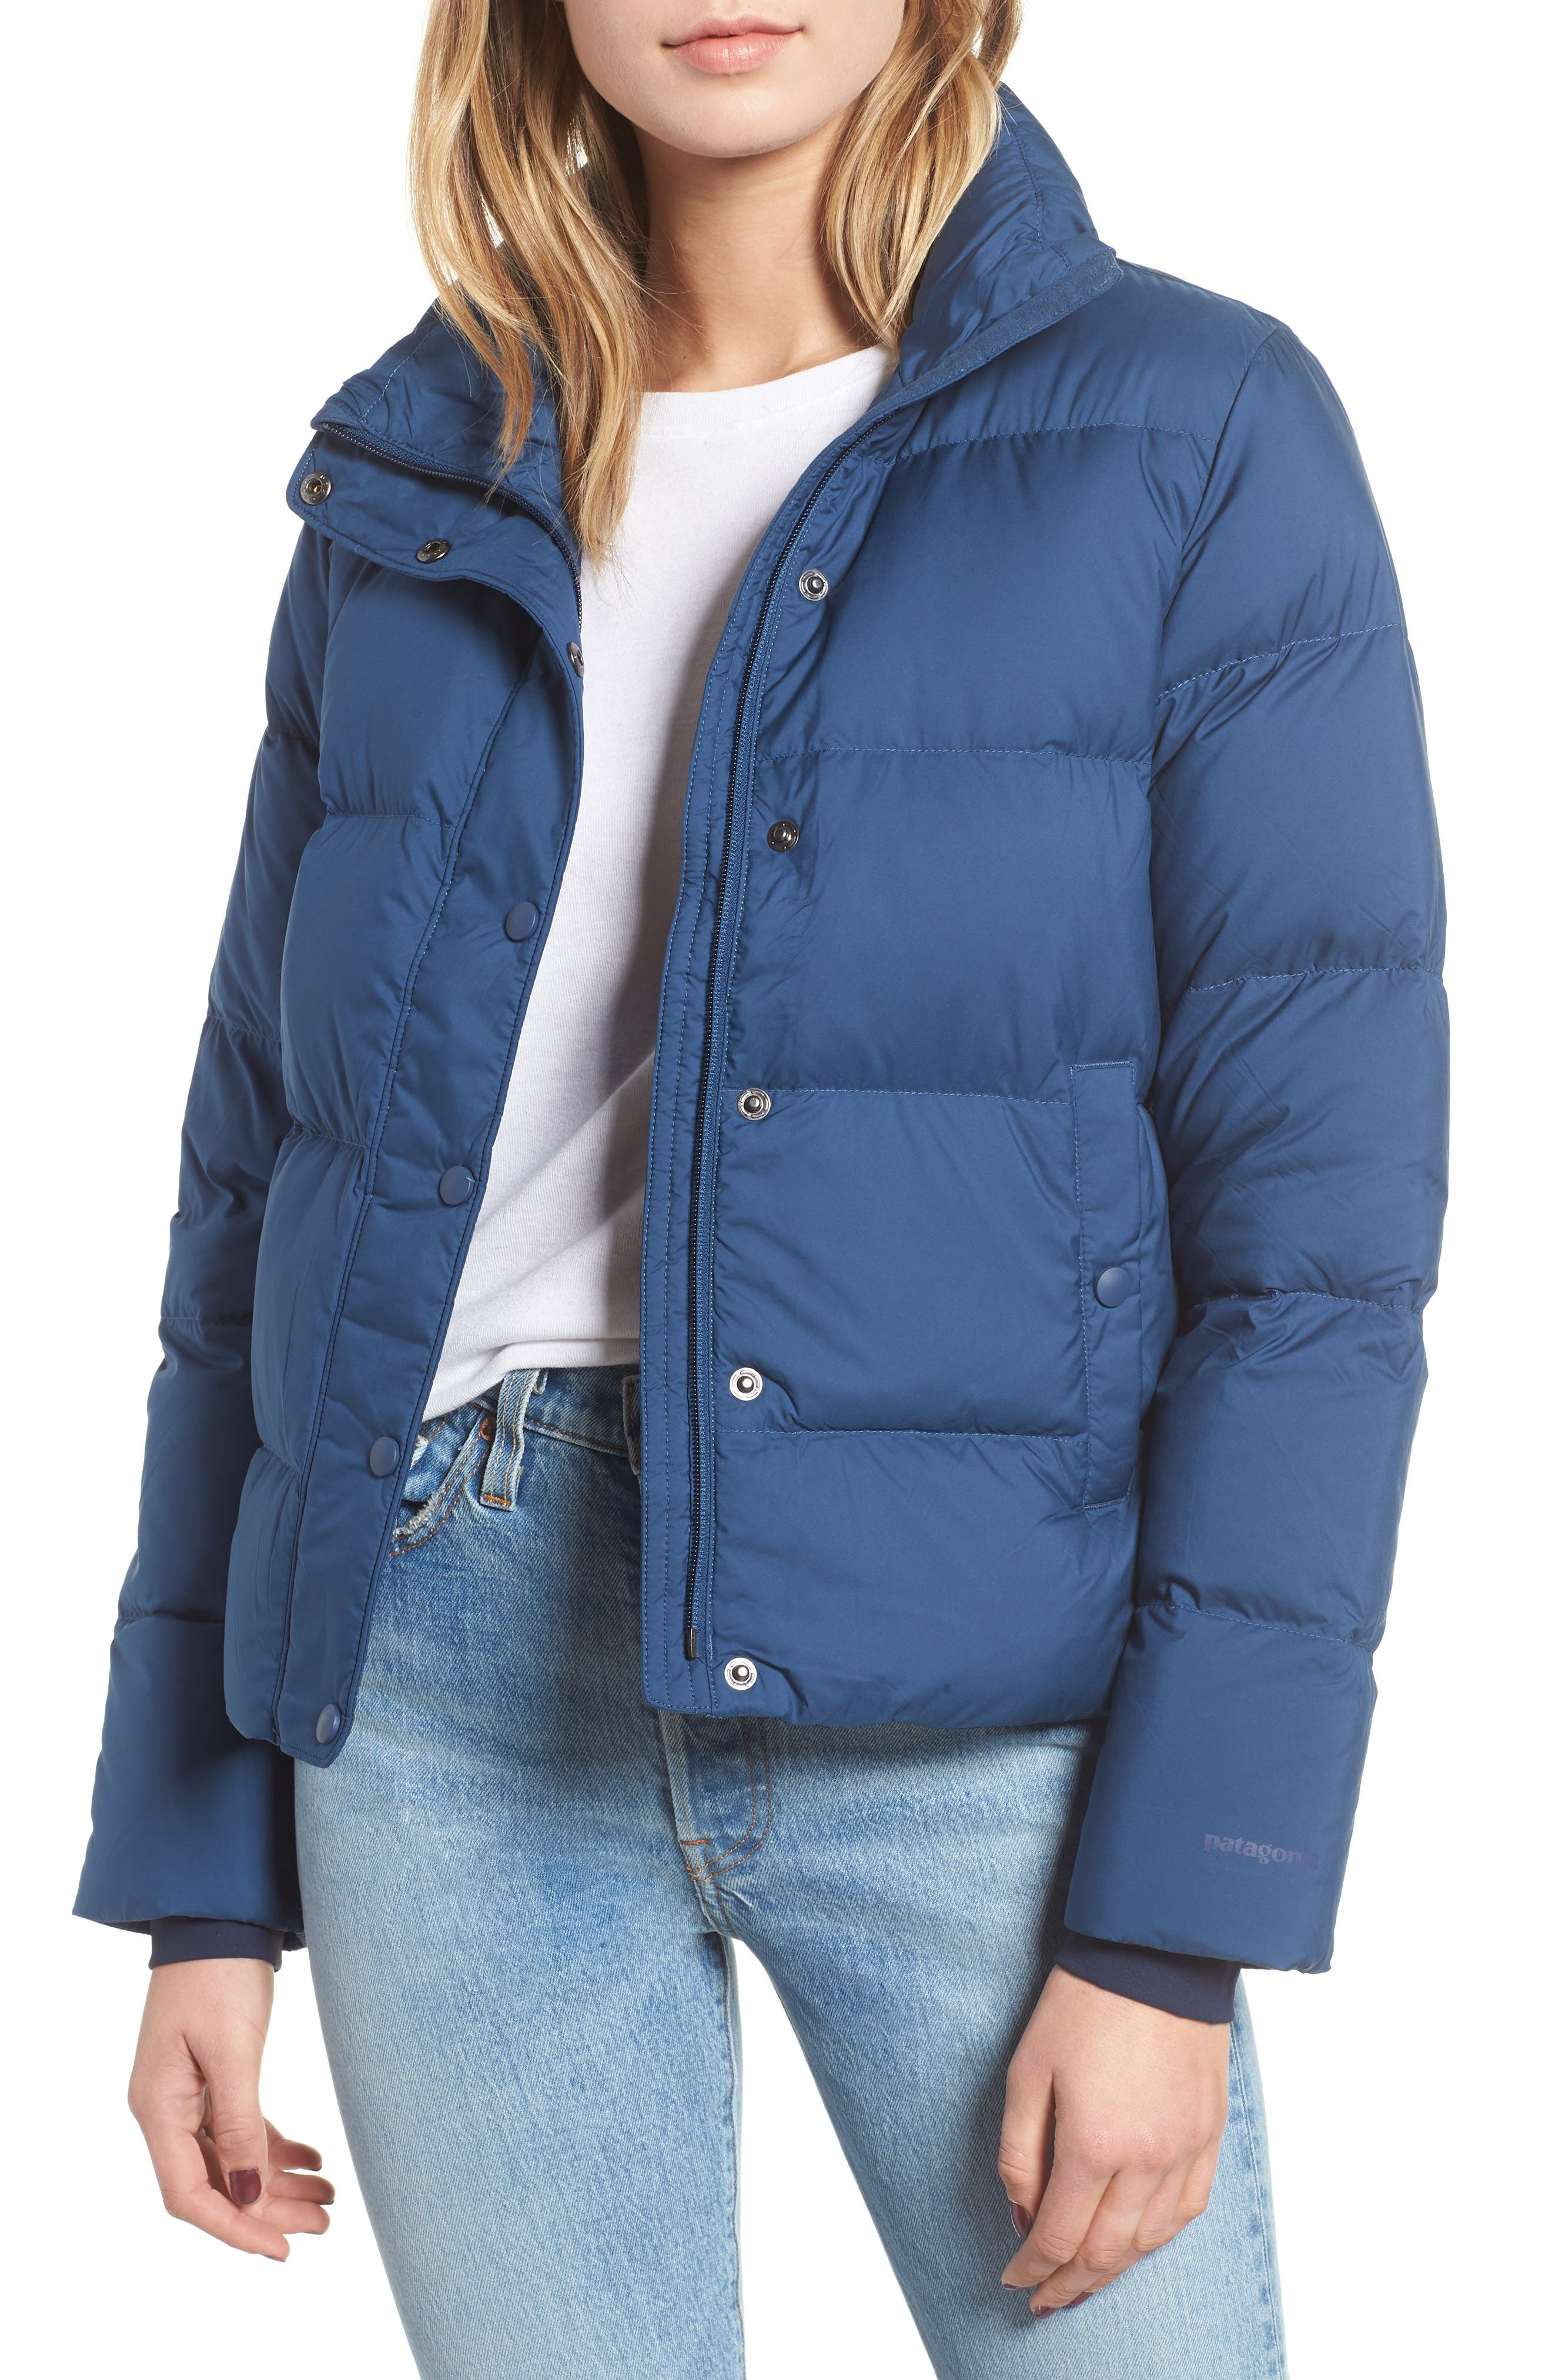 Patagonia Silent Water Repellent 700-Fill Power Down Insulated Jacket, Blue